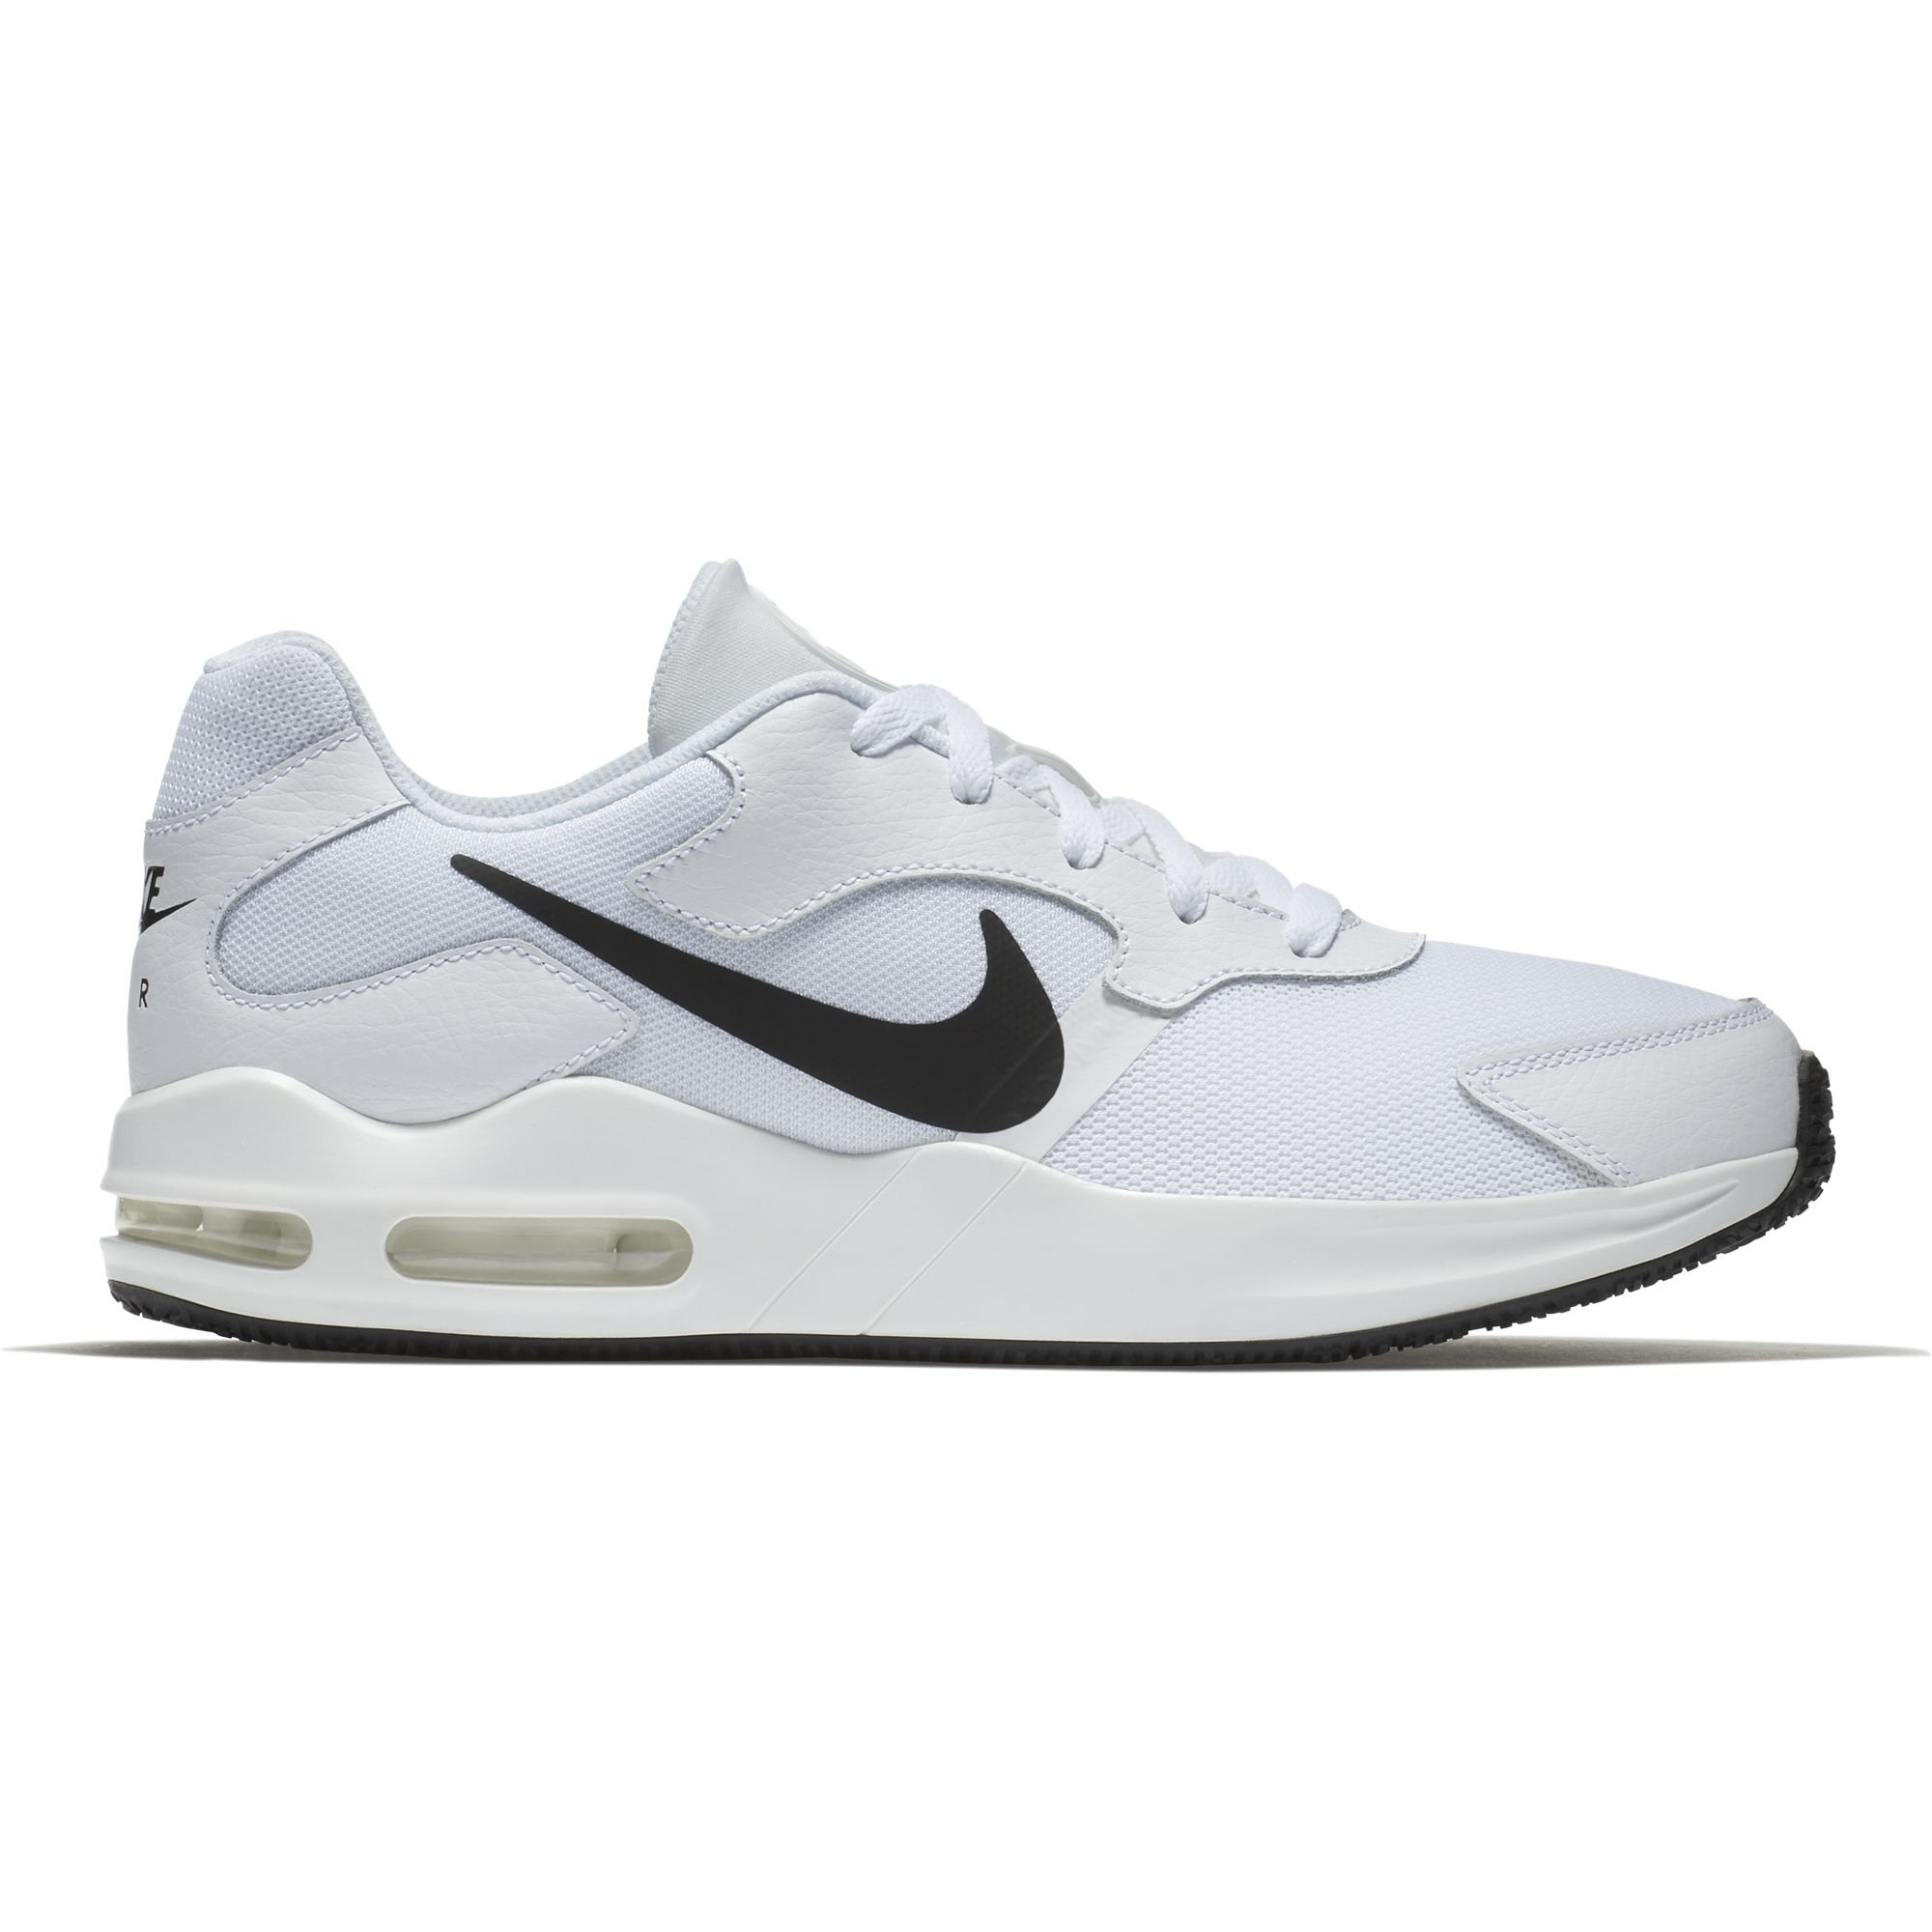 NIKE 916768-100 AIR MAX GUILE - Deportes Liverpool ef5069a5ca3ee